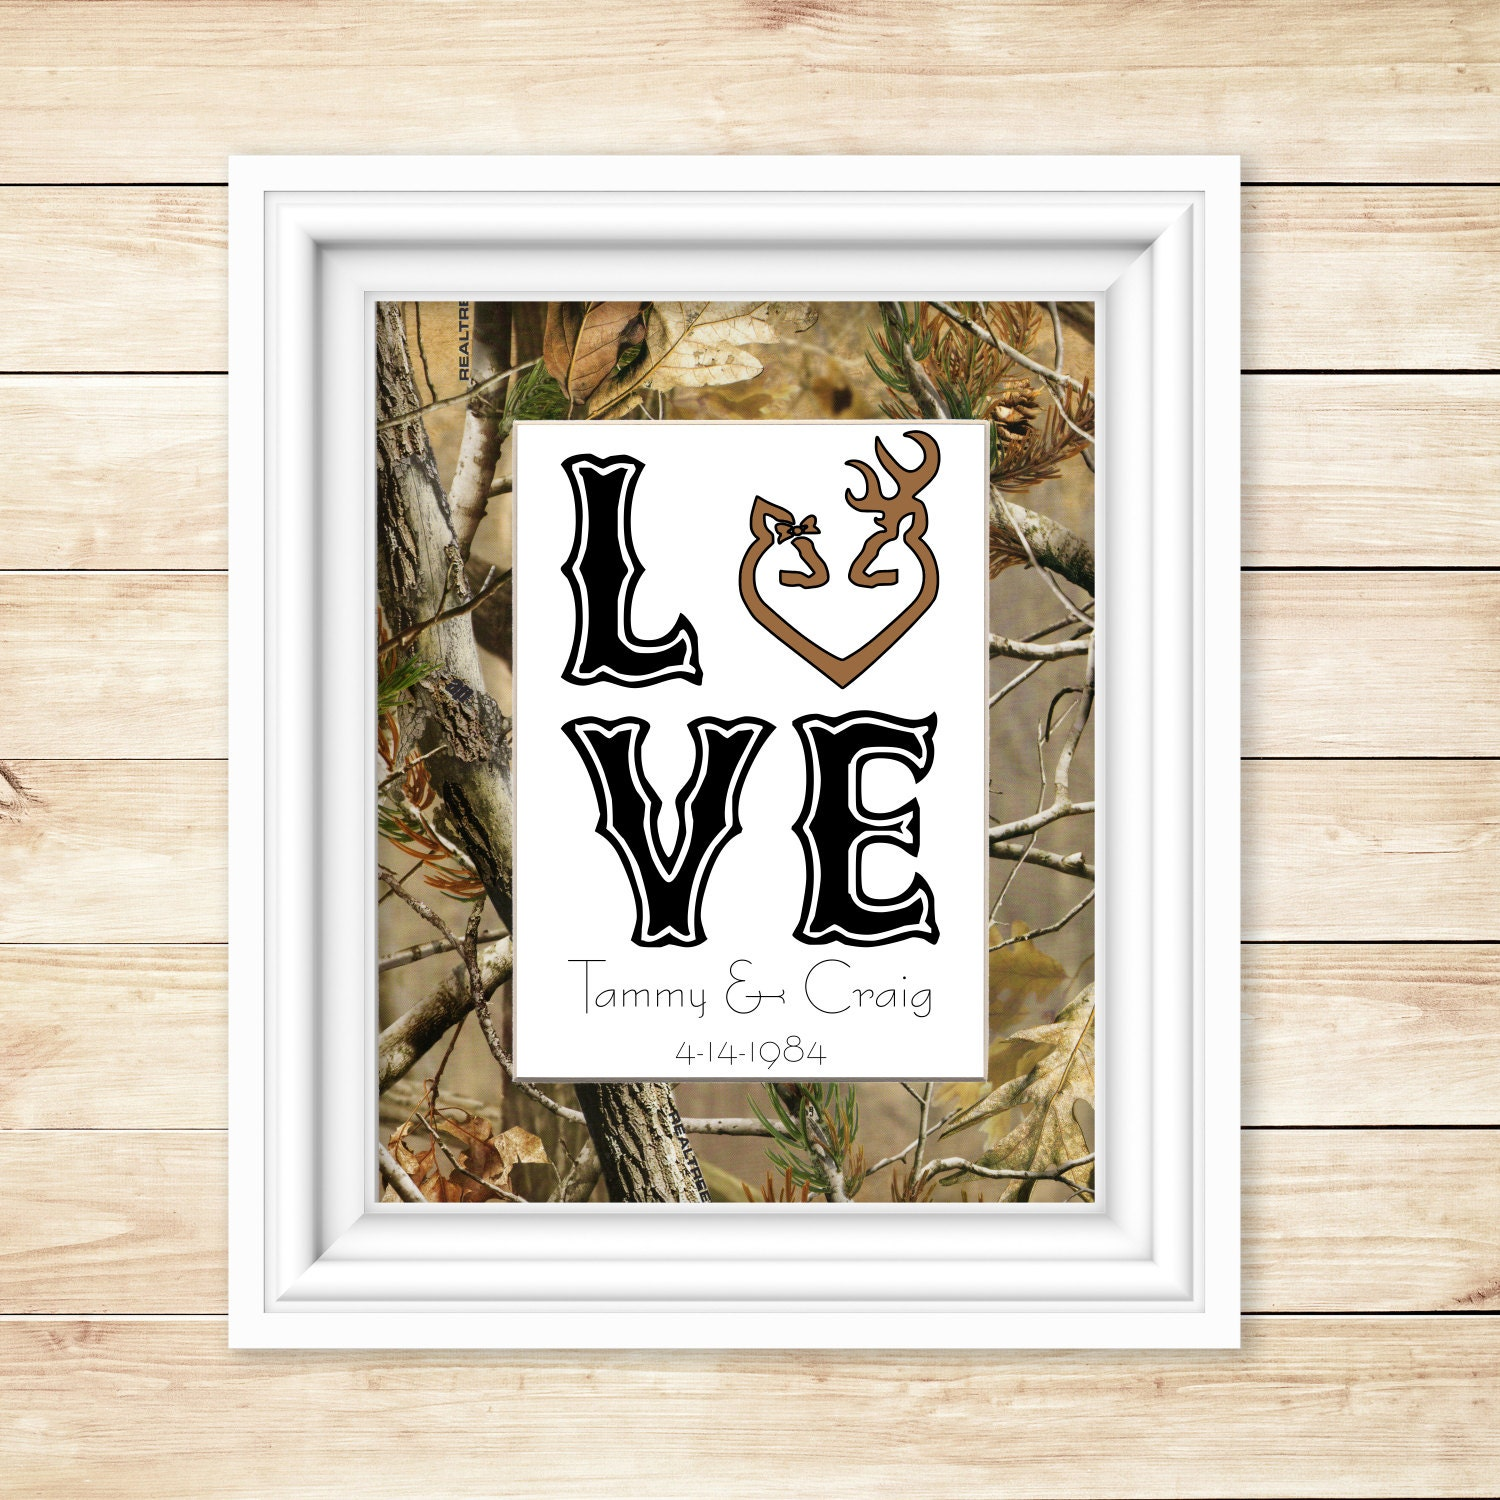 Hunting Wedding Decor Hunting Decor for the Home Camo